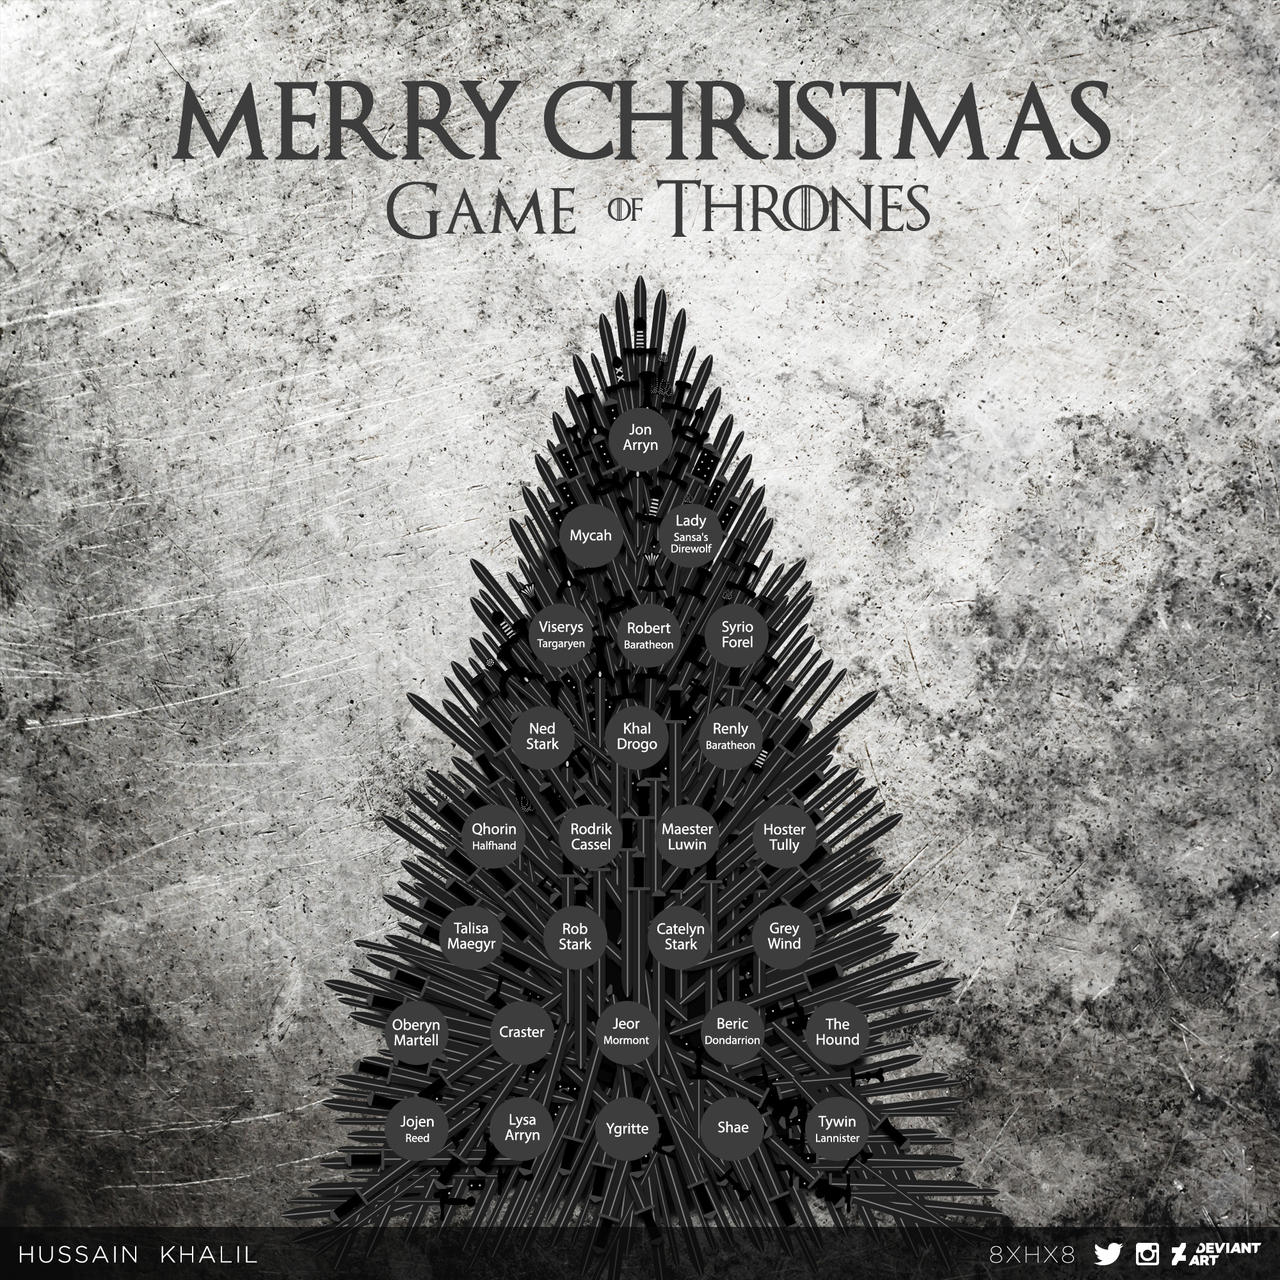 Game Of Thrones Throne Wallpaper: Merry-Christmas-Game-of-Thrones By 8xhx8 On DeviantArt